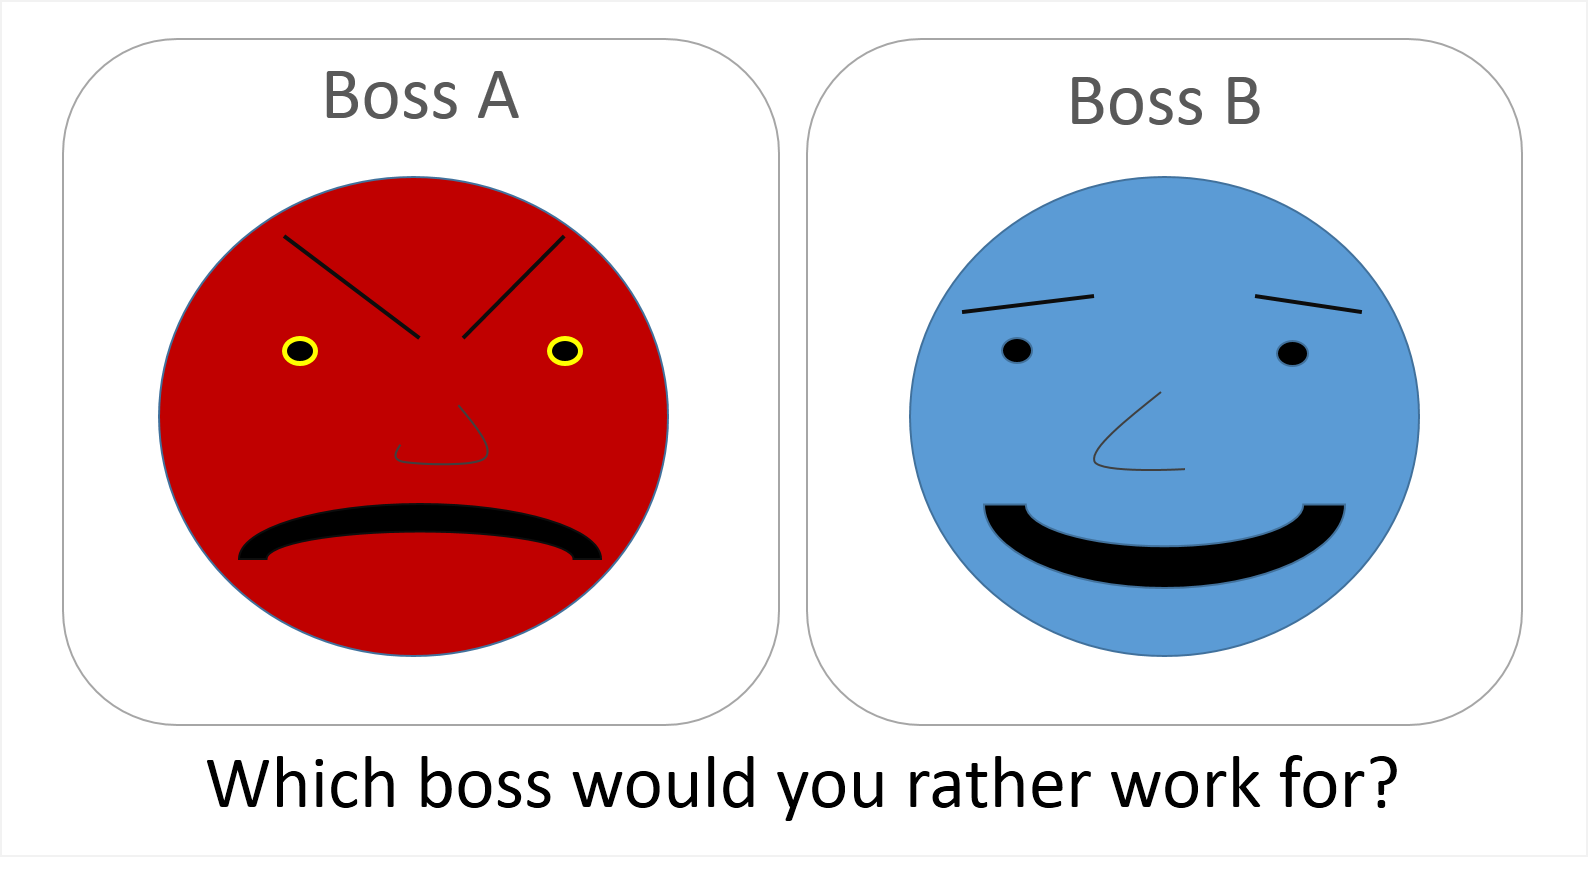 Do you want to work for a mad boss or a glad boss? You can influence this based on how you work with her.